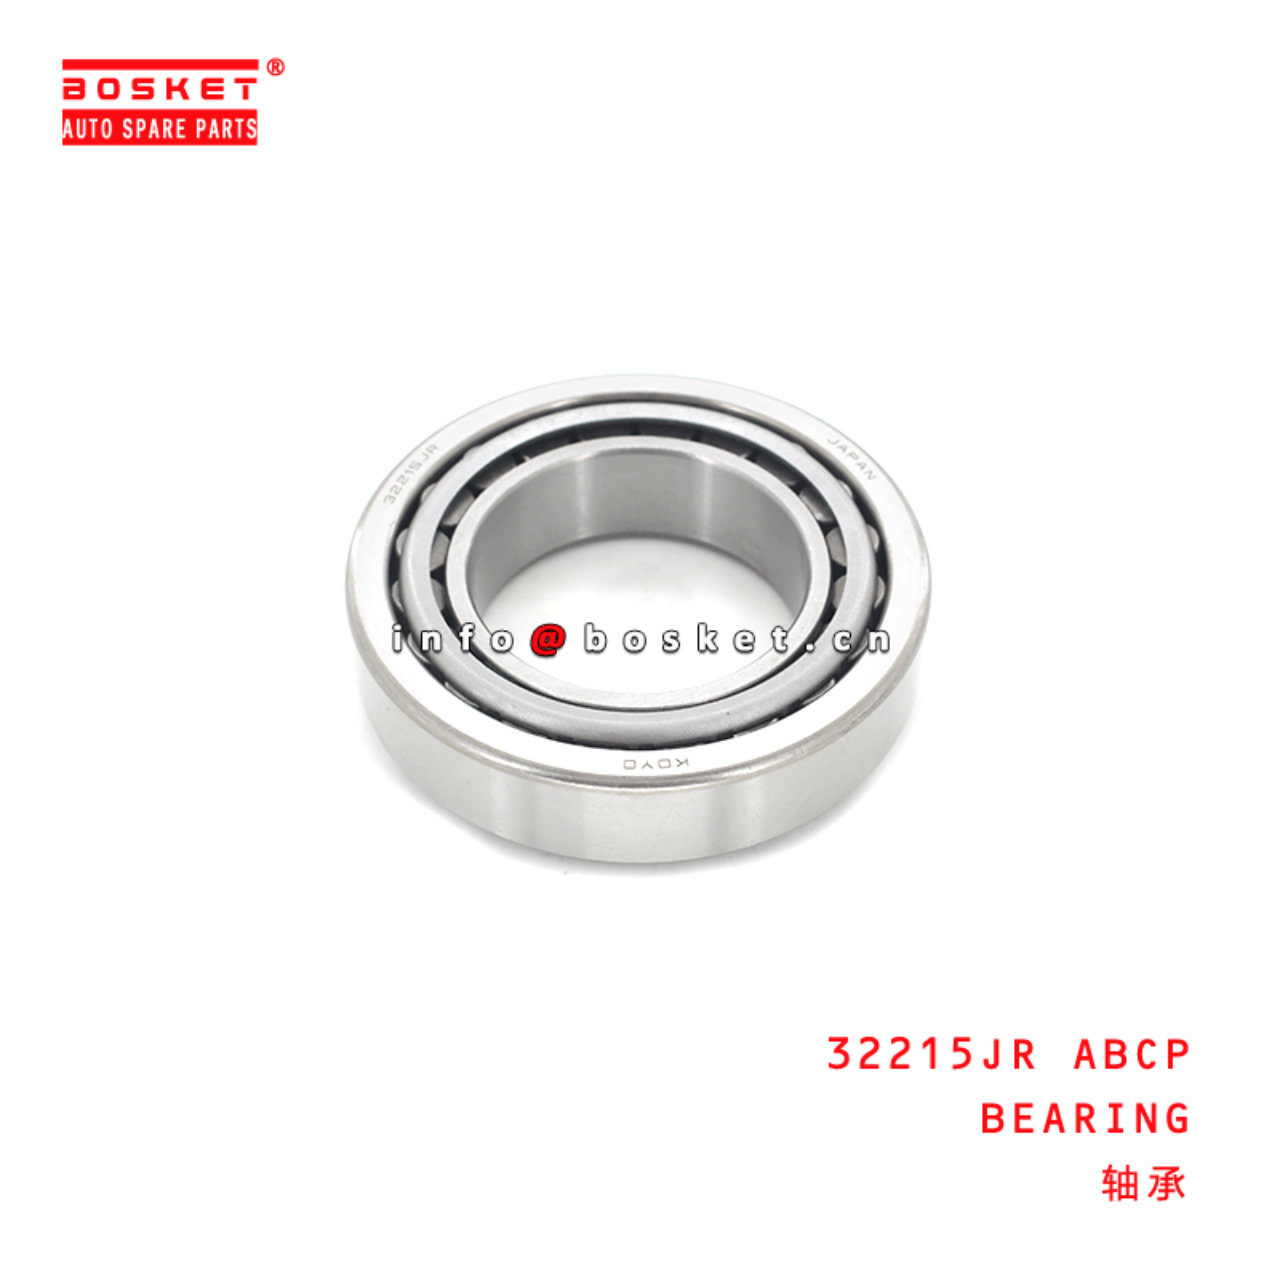 32215JR Bearing Suitable for ISUZU